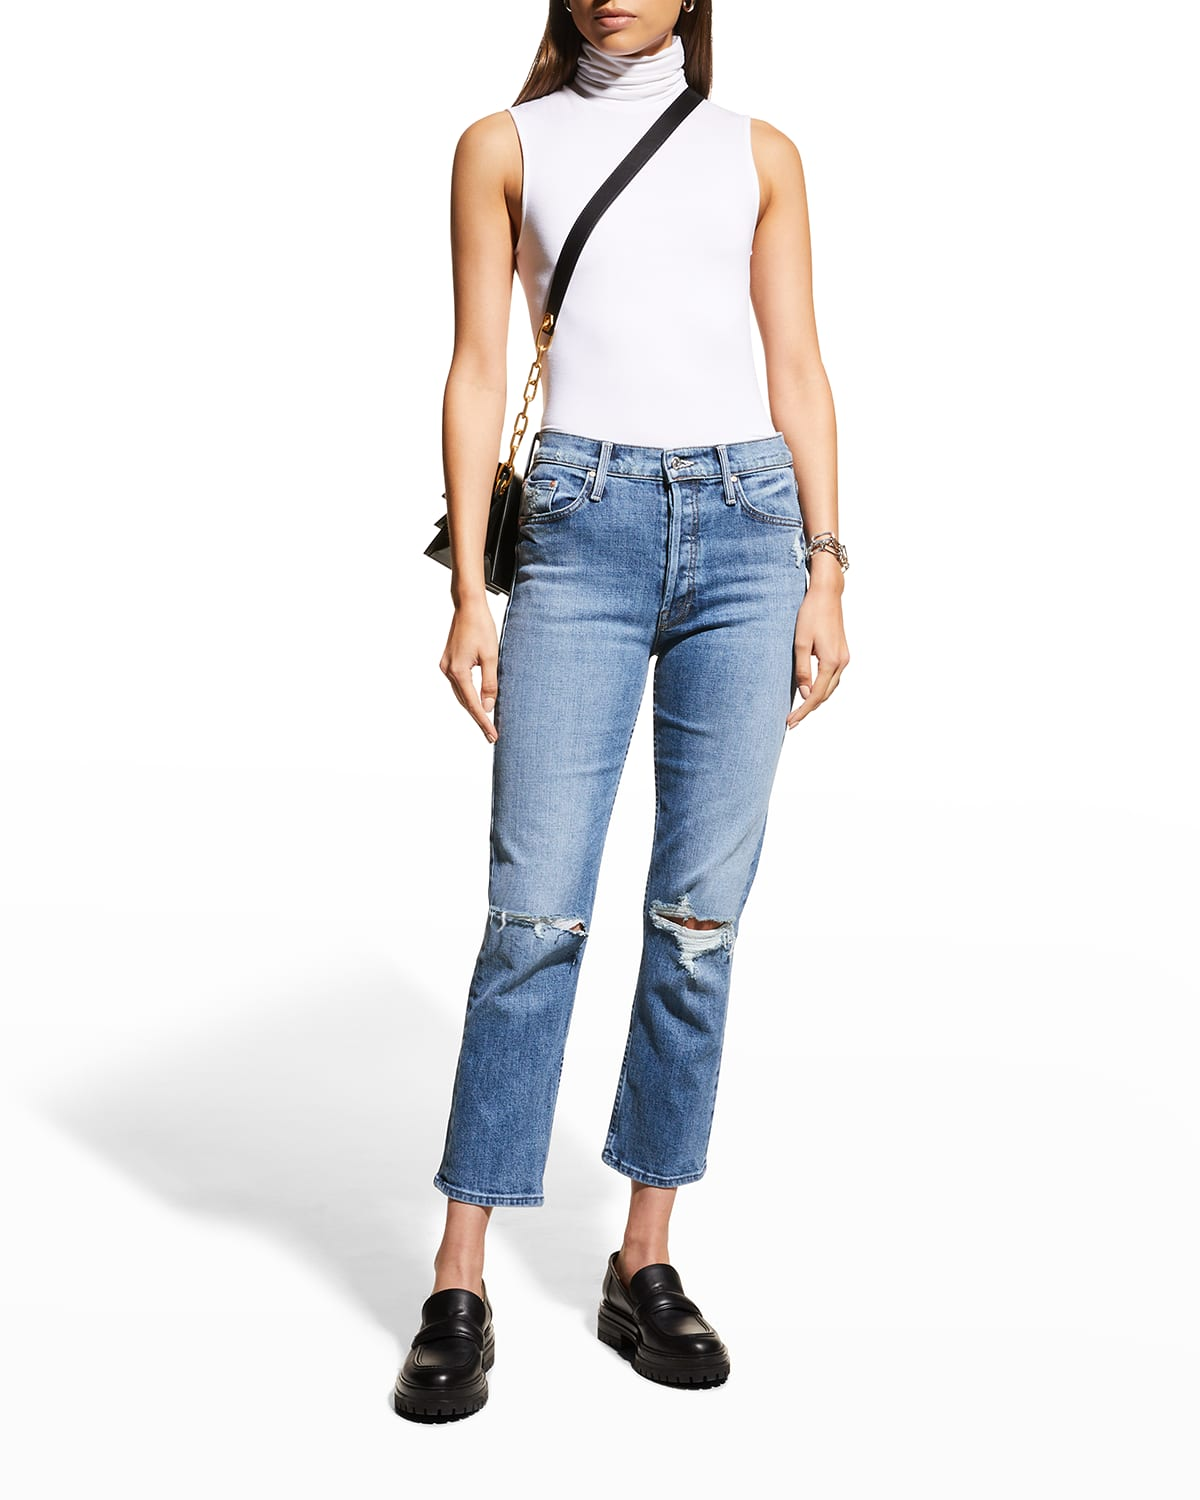 The Tomcat Distressed Ankle Jeans